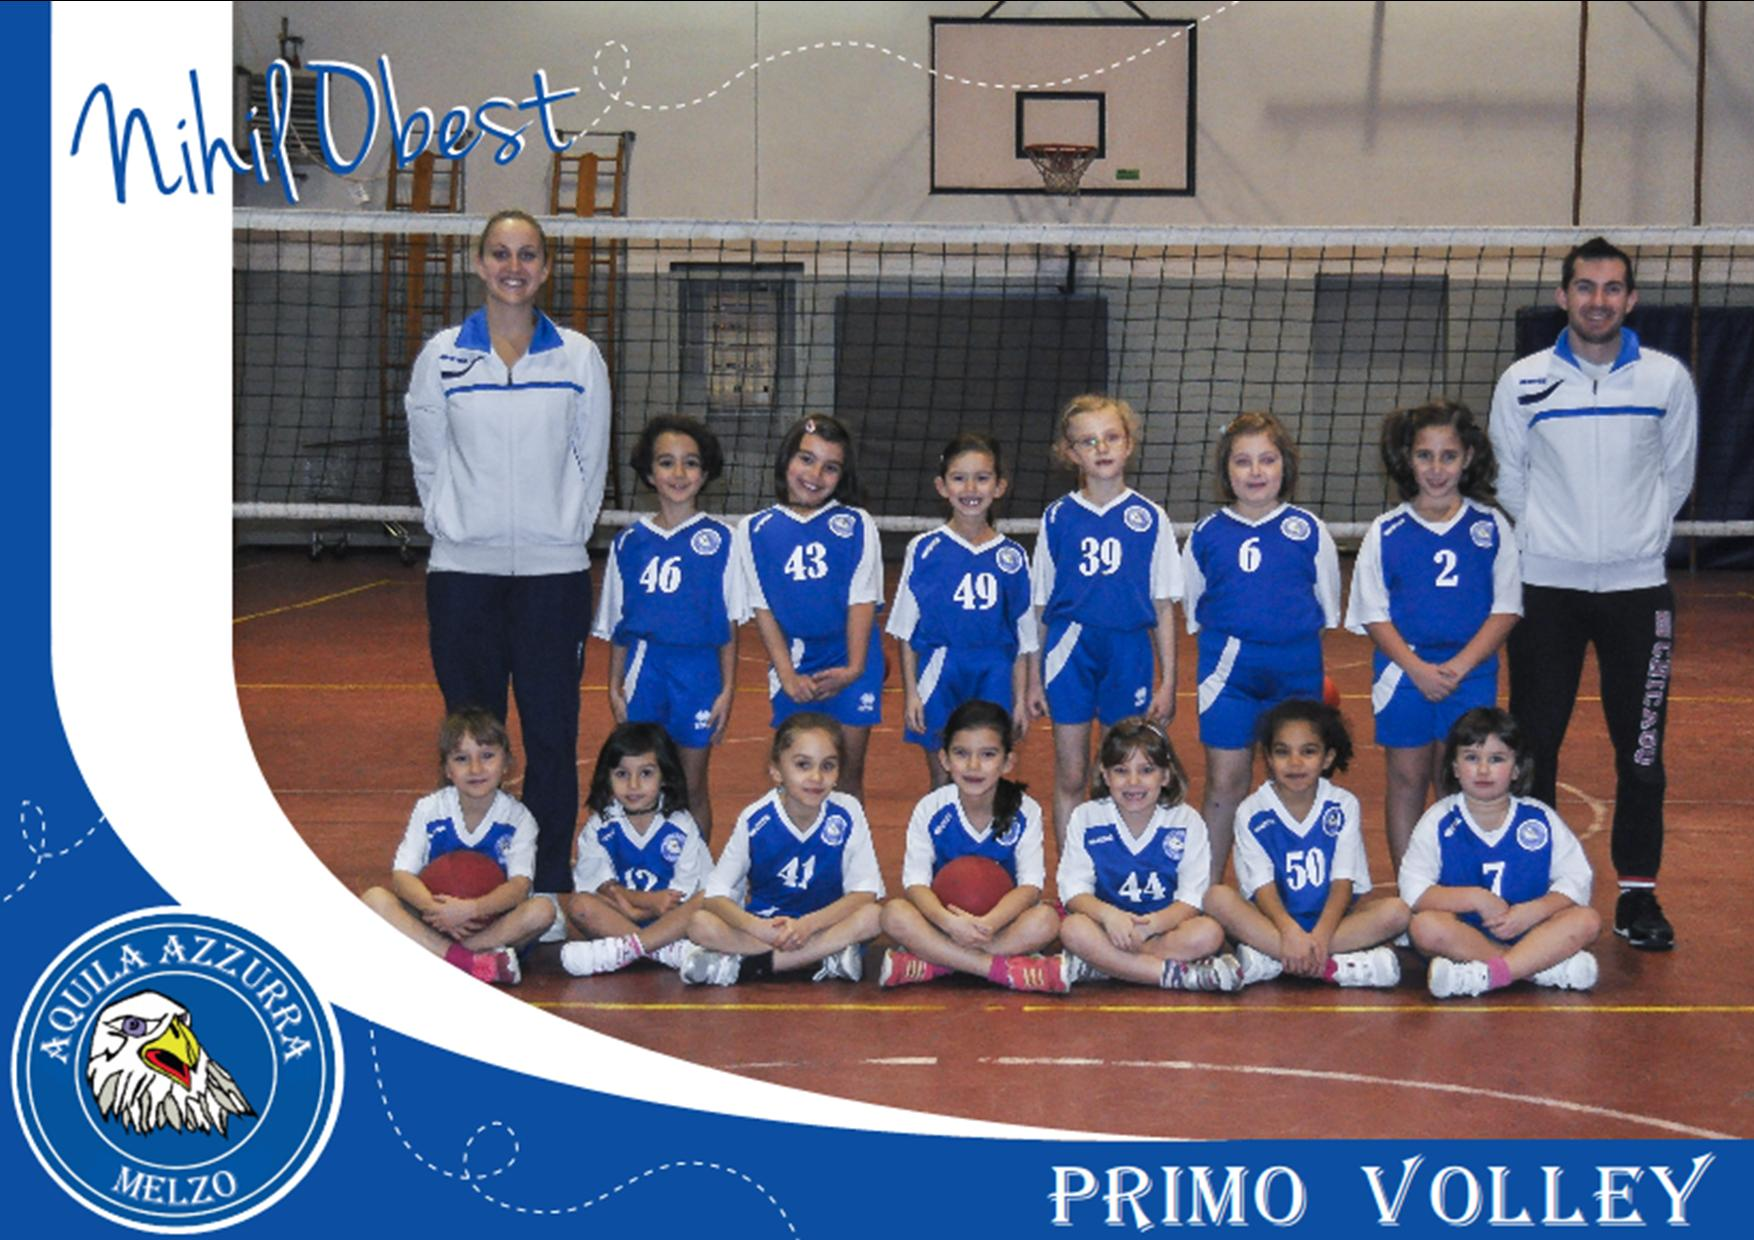 PRIMO VOLLEY 2015